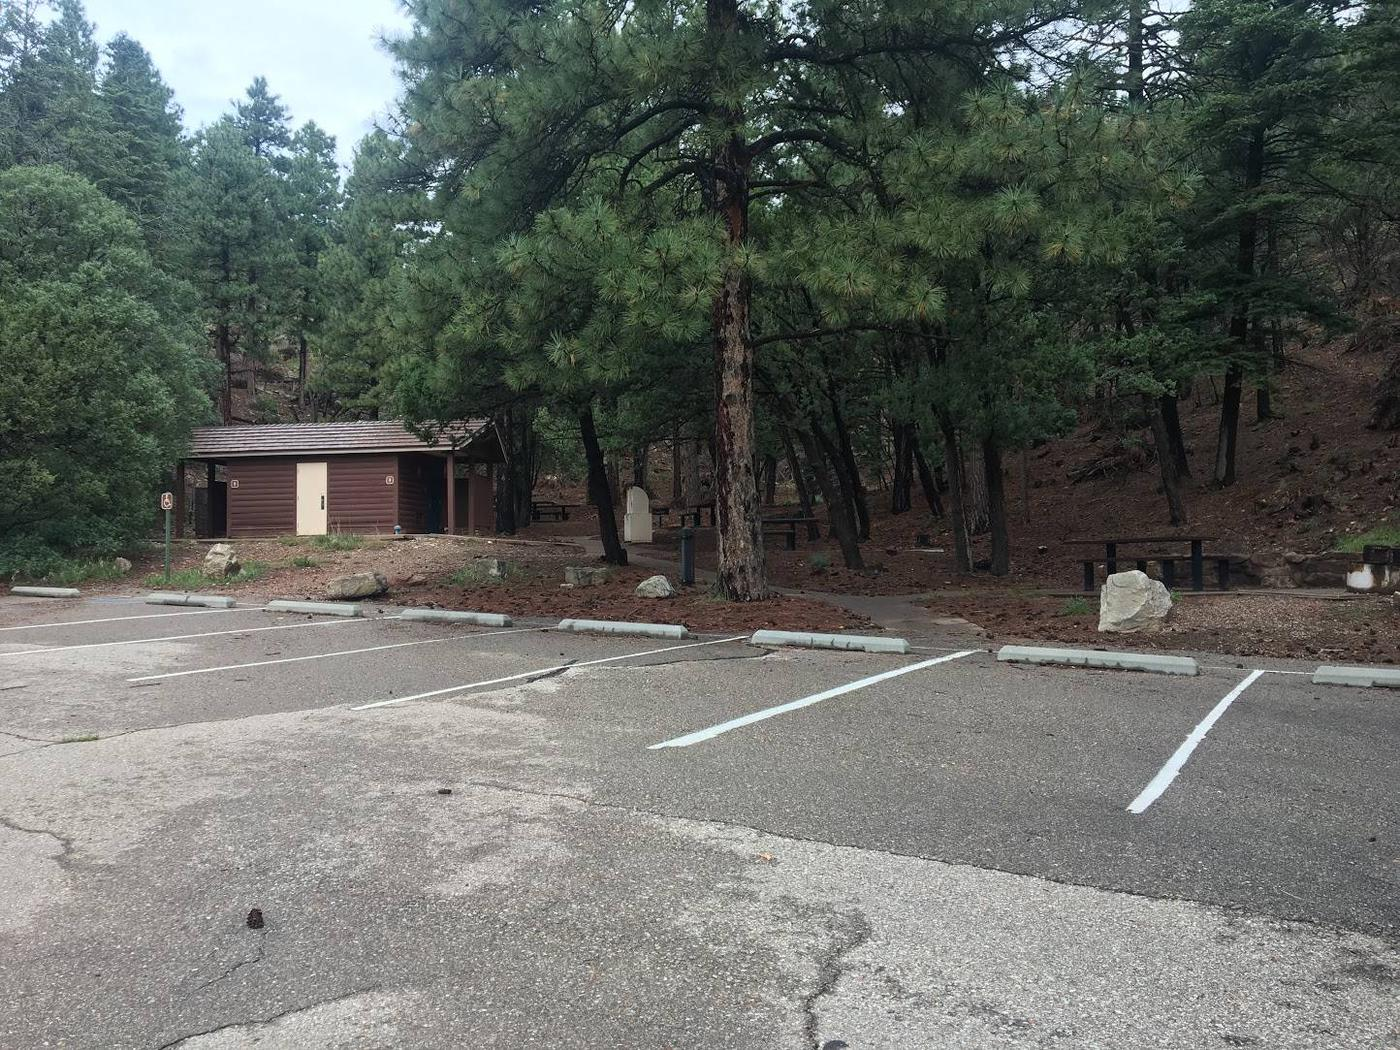 shows shaded picnic area for groups with restroom and parking lot close byShaded group picnic area with restroom and parking close by